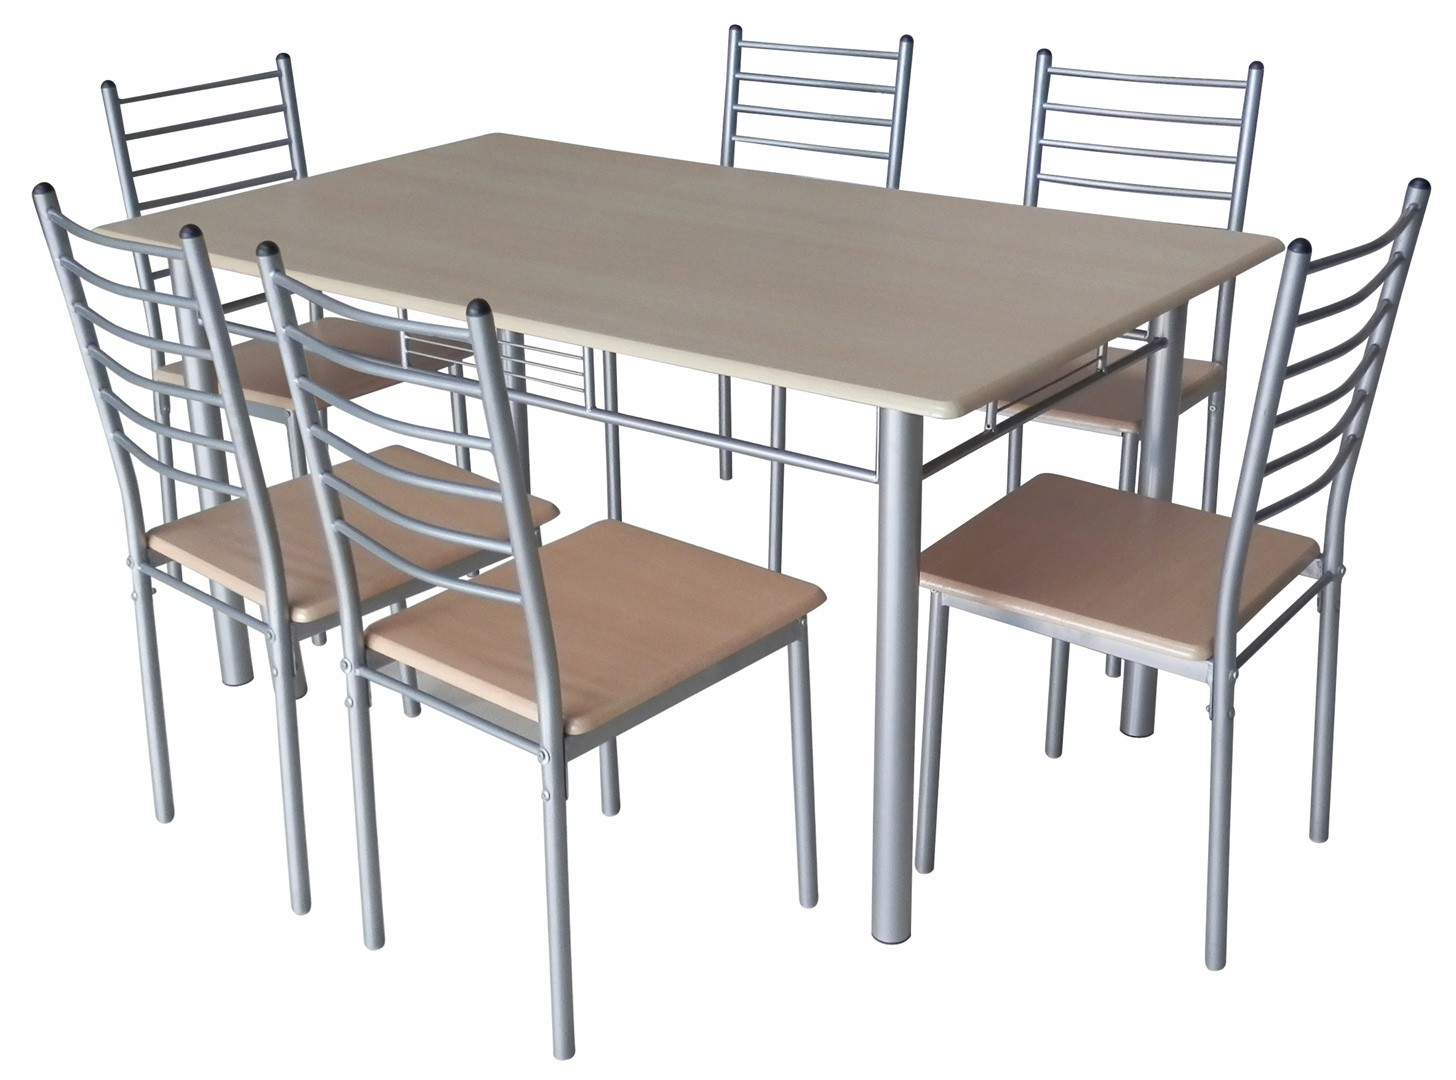 Ensemble table et chaises de cuisine but chaise id es - Table de cuisine plus chaises ...